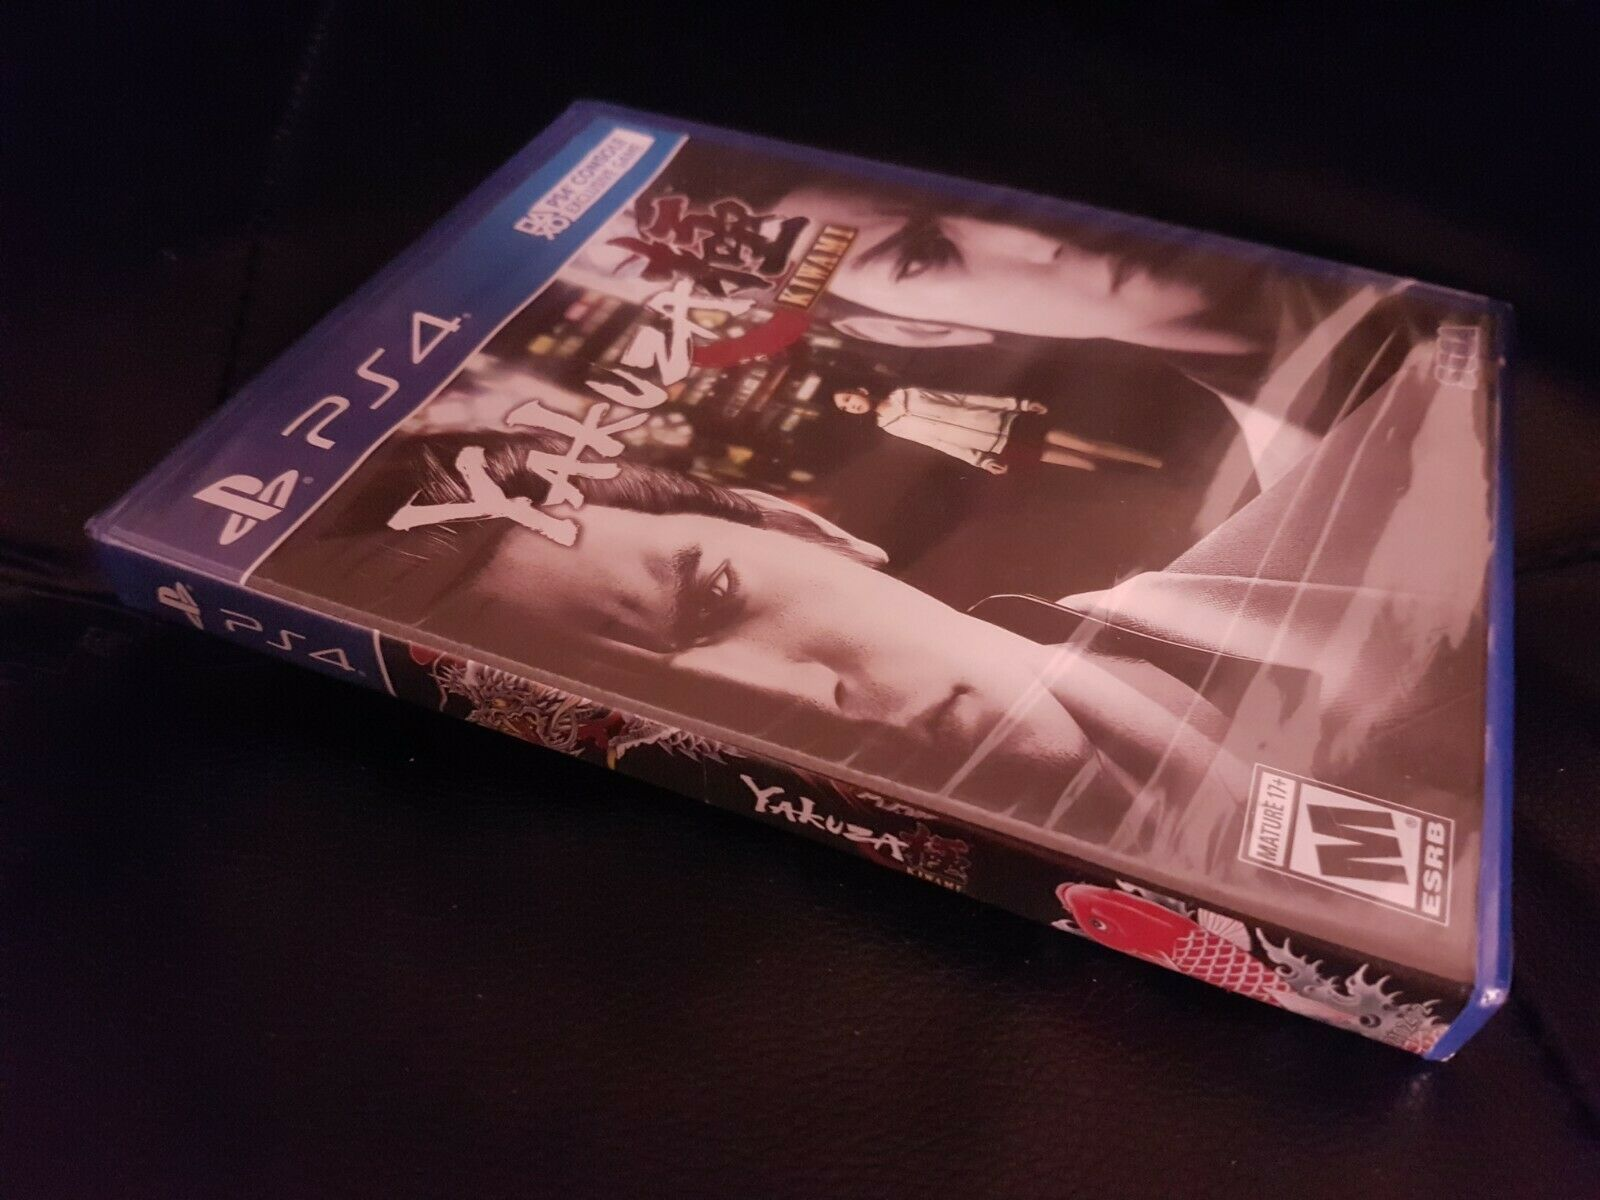 Yakuza Kiwami Standard Edition Ps4 Playstation 4 Brand New Sony 0 Zero R1 1 Of 3only Available